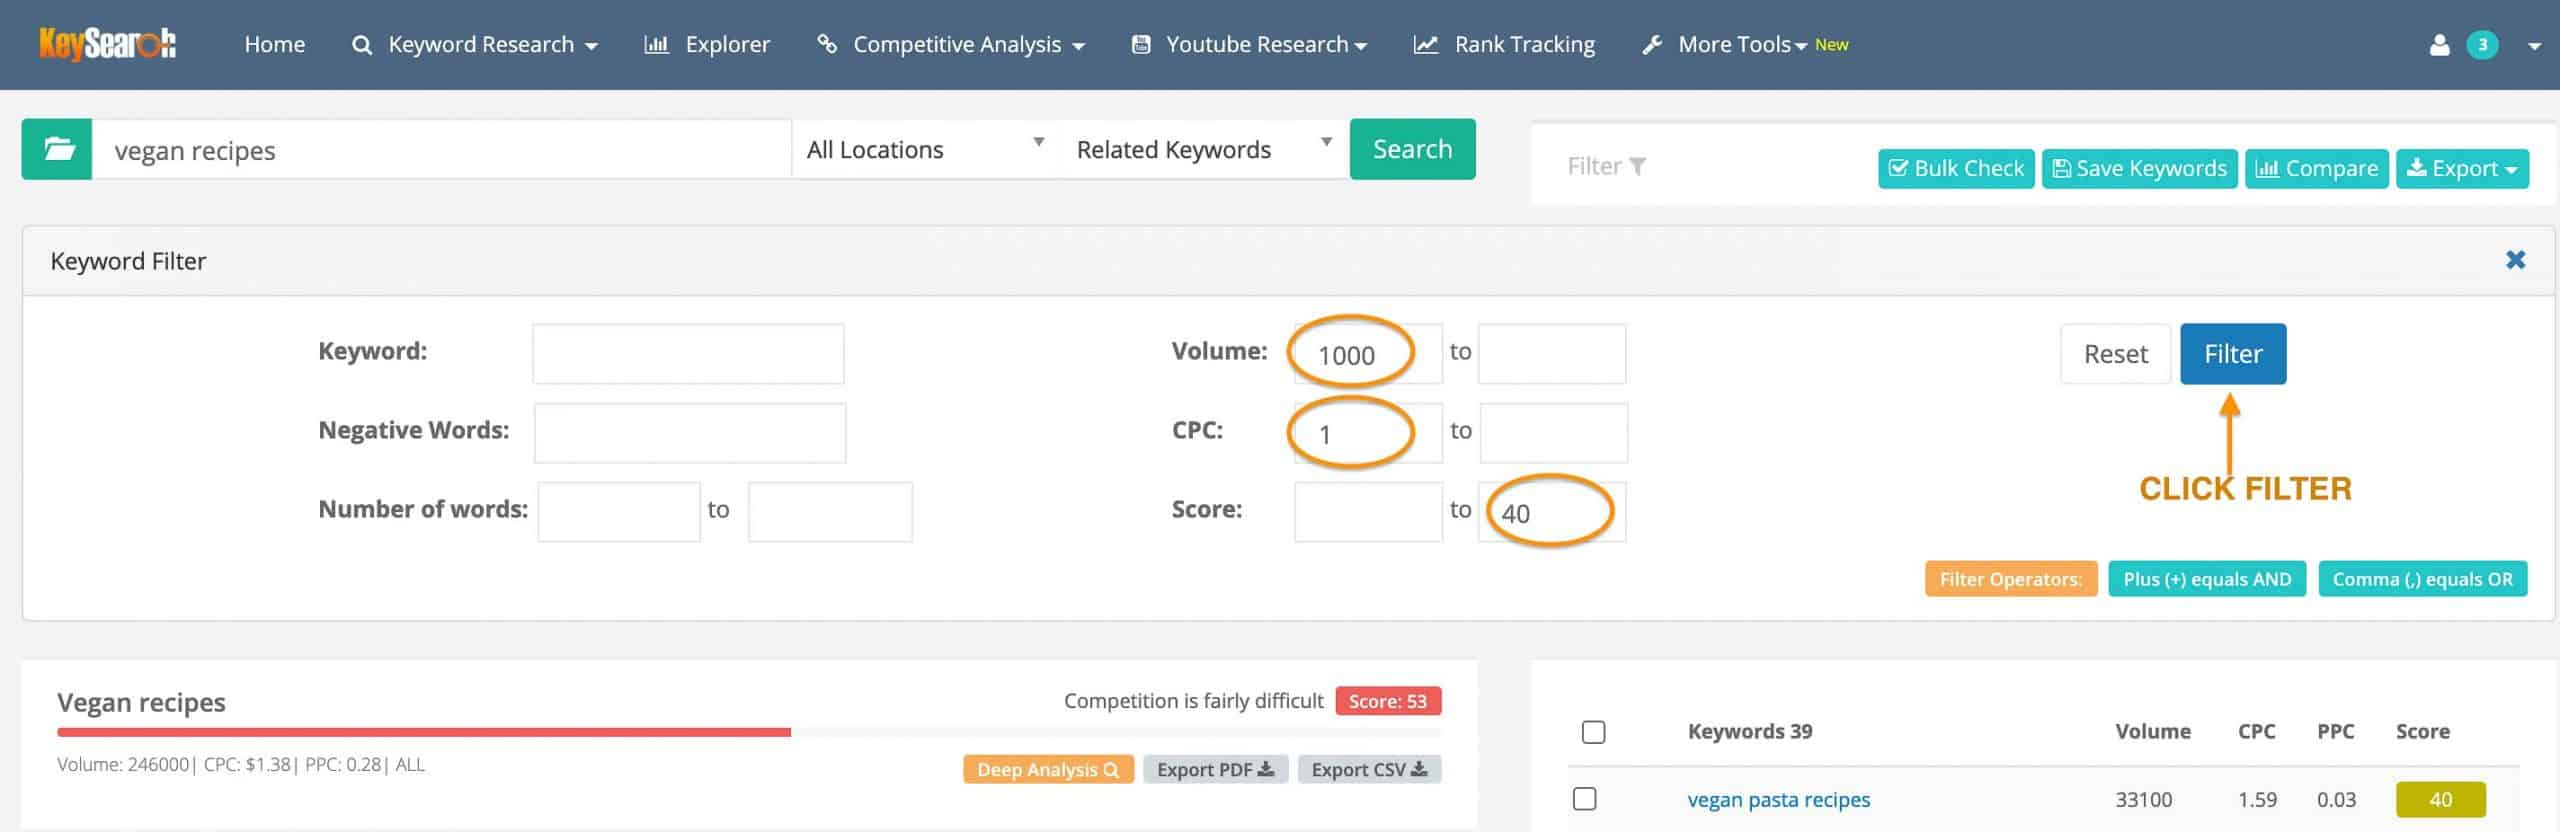 how to filter in keysearch